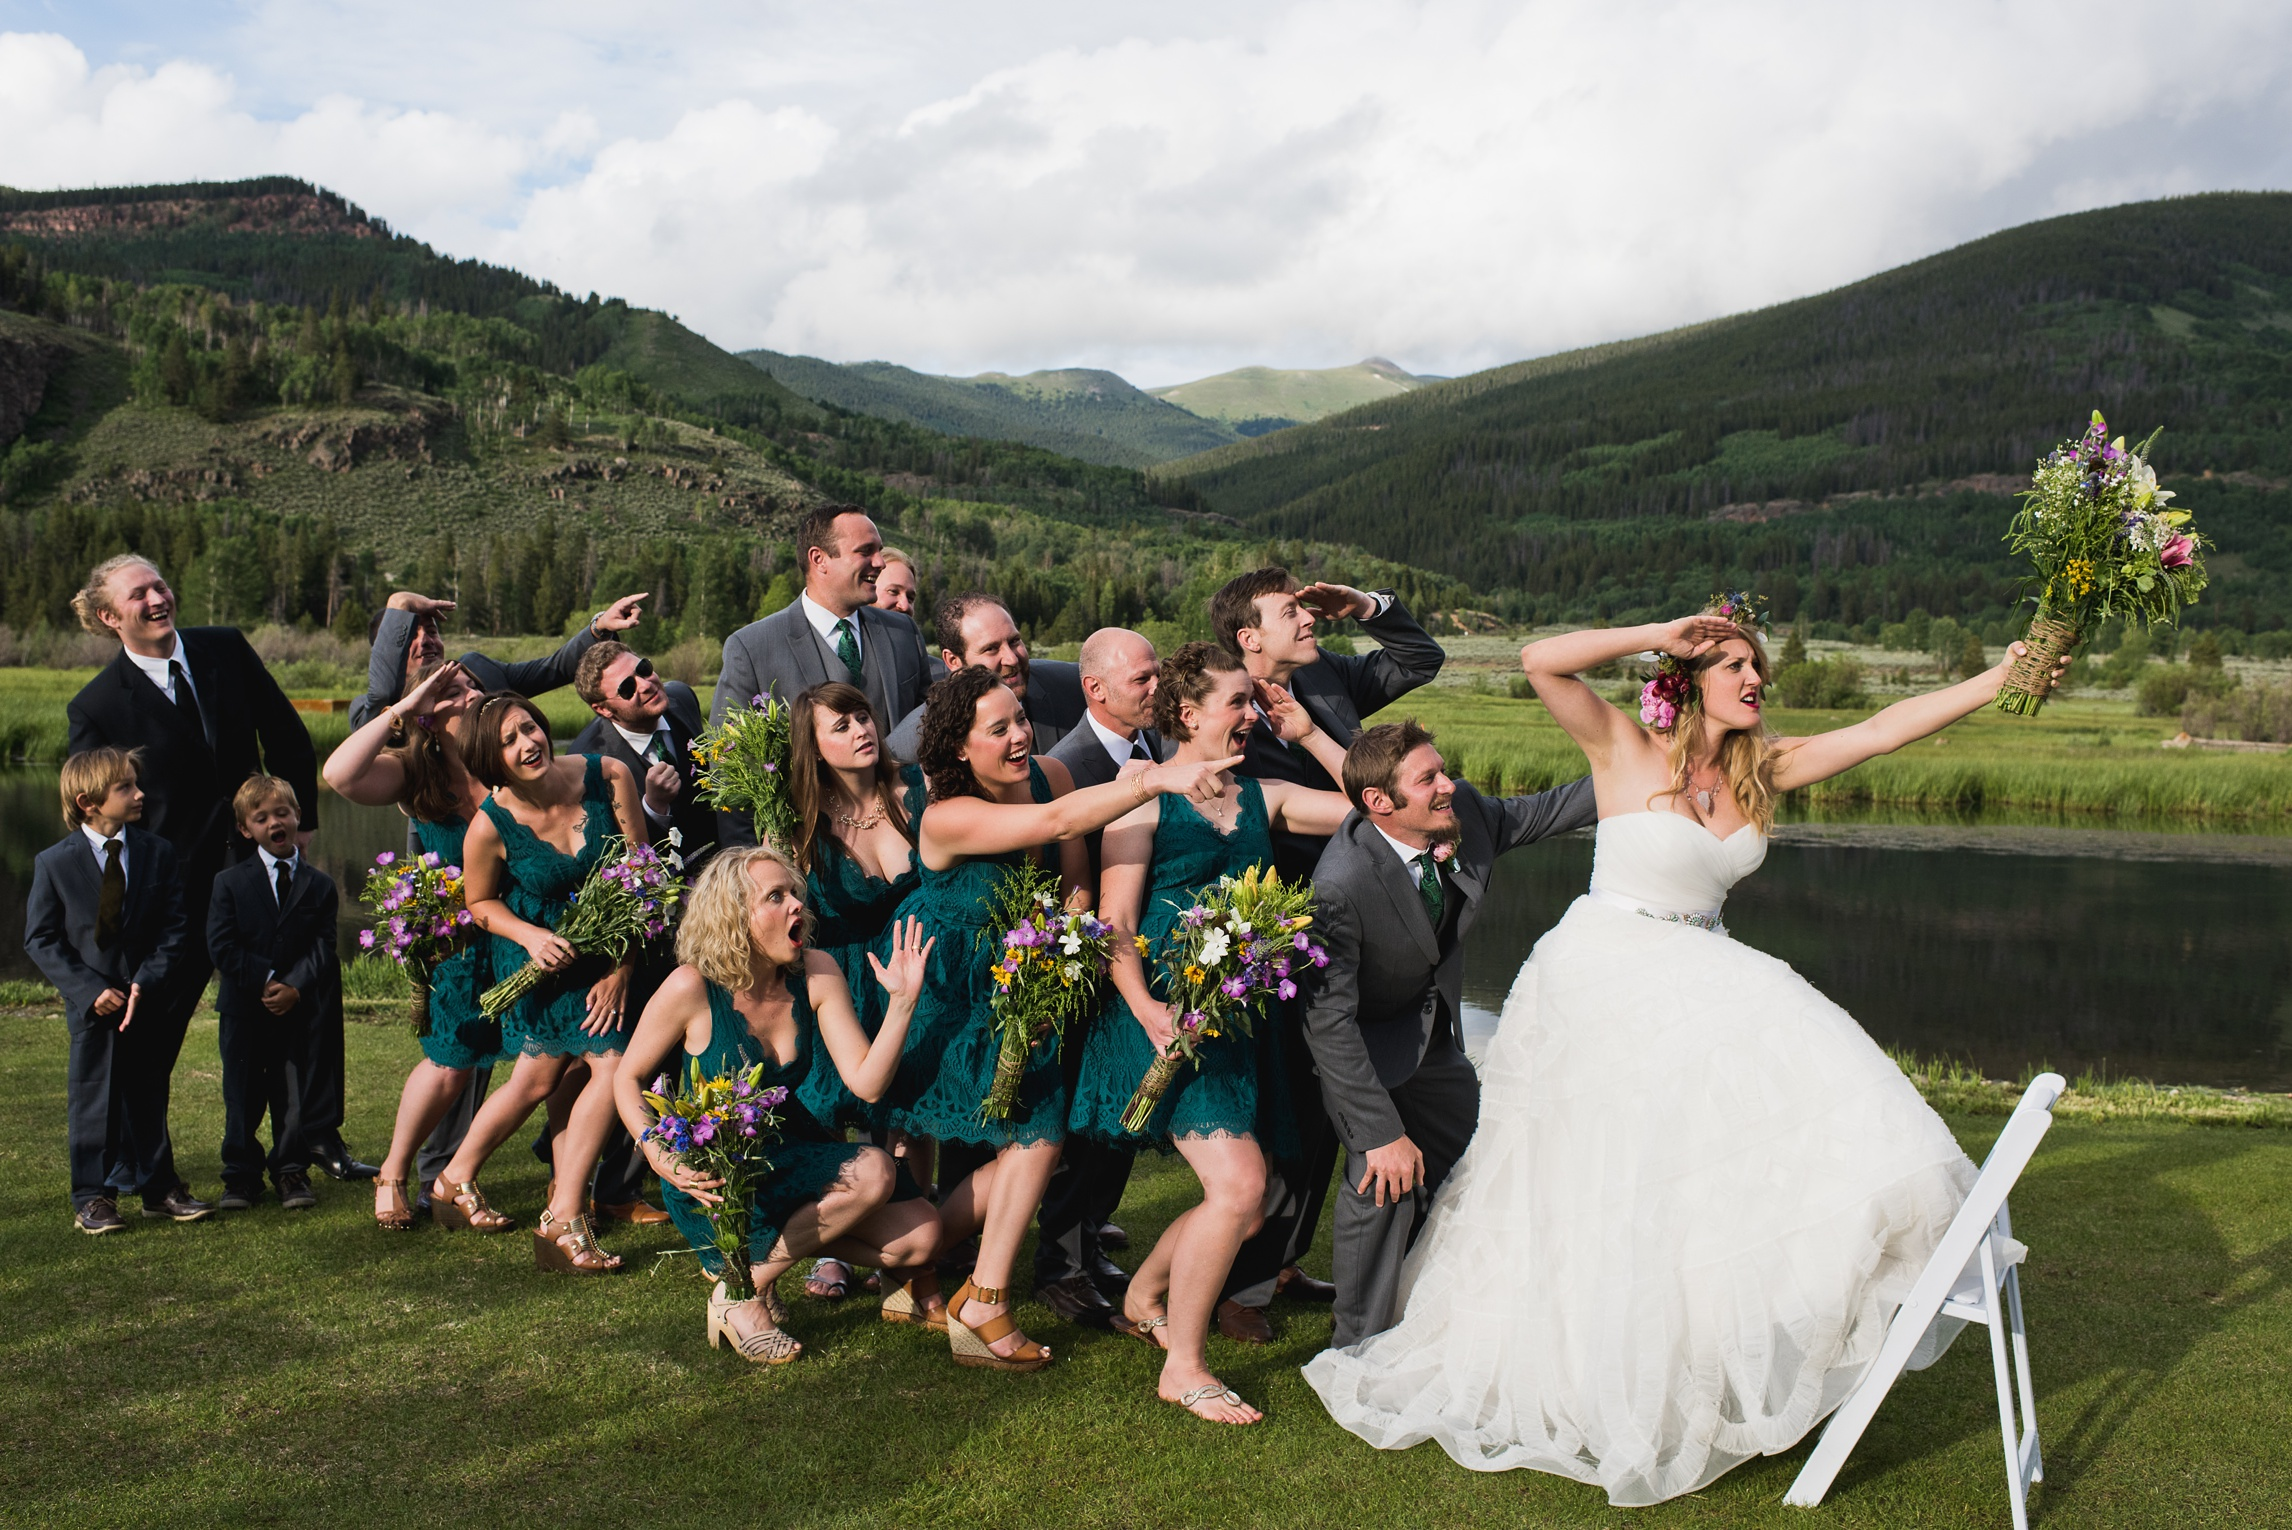 A bridal party has some fun and recreates Washington Crossing the Delaware at at wedding at Camp Hale near Vail, Colorado. Wedding photography by Sonja Salzburg of Sonja K Photography.